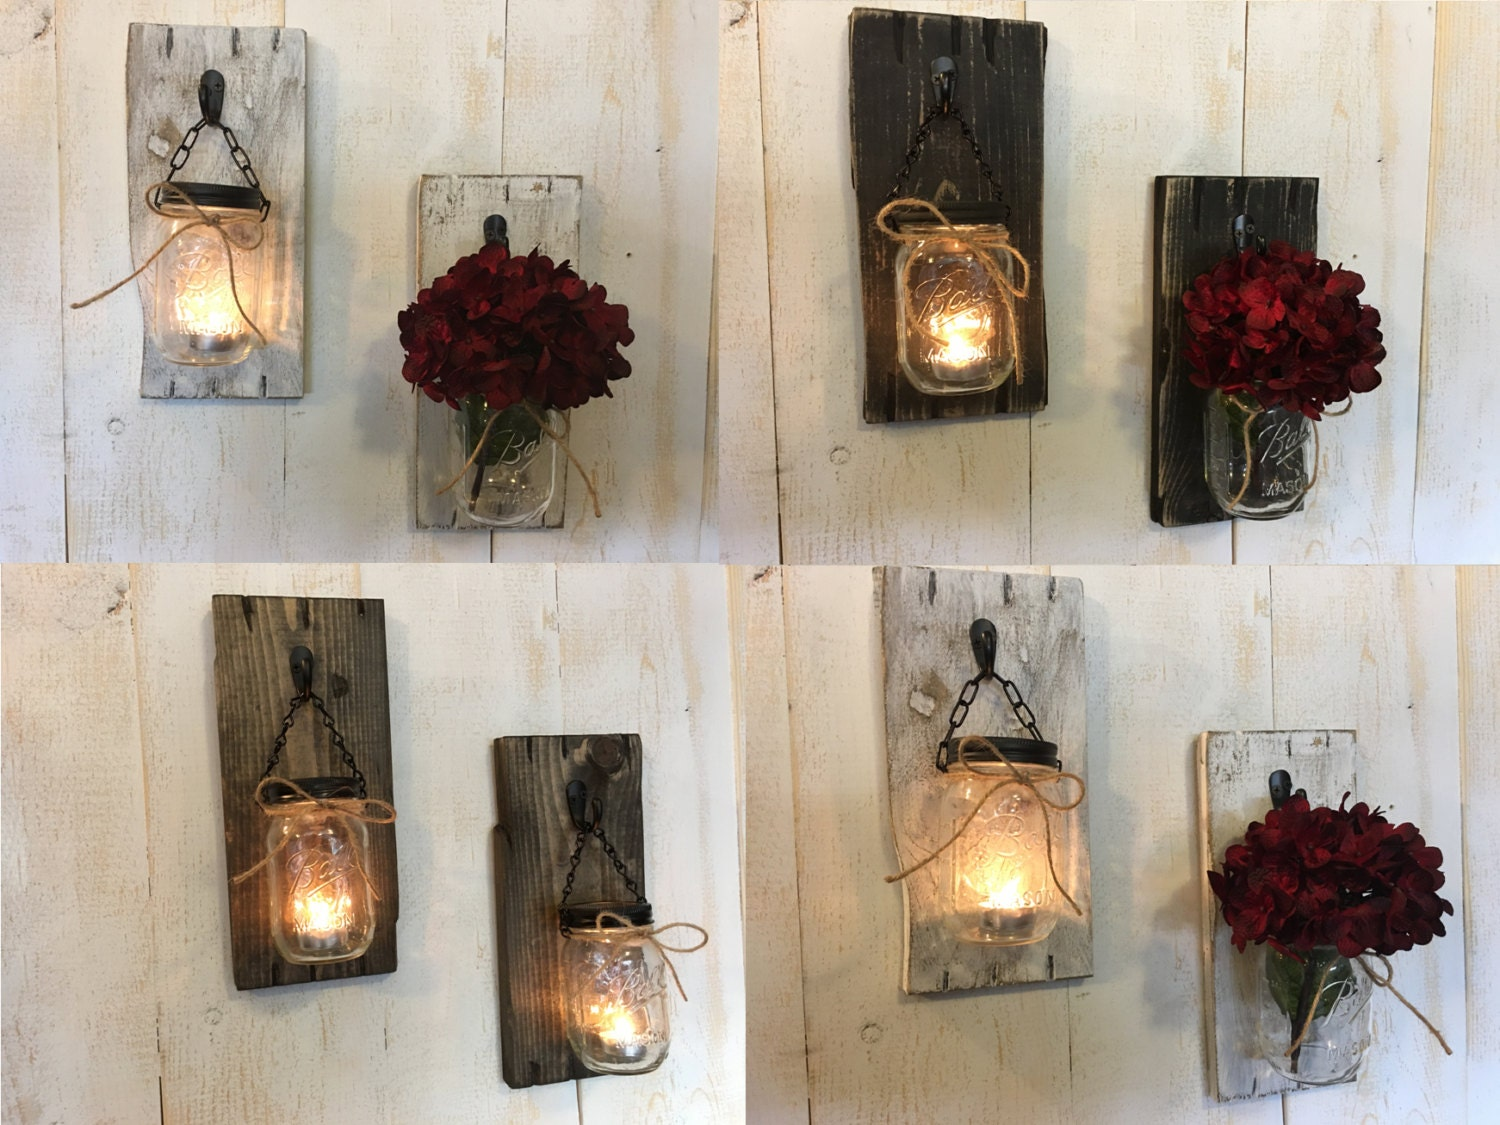 Wall sconce lanterns wall lantern candle sconce tealight wall sconce lanterns wall lantern candle sconce tealight holder wall sconce candle candle holder rustic wall sconce wood wall sconce amipublicfo Images